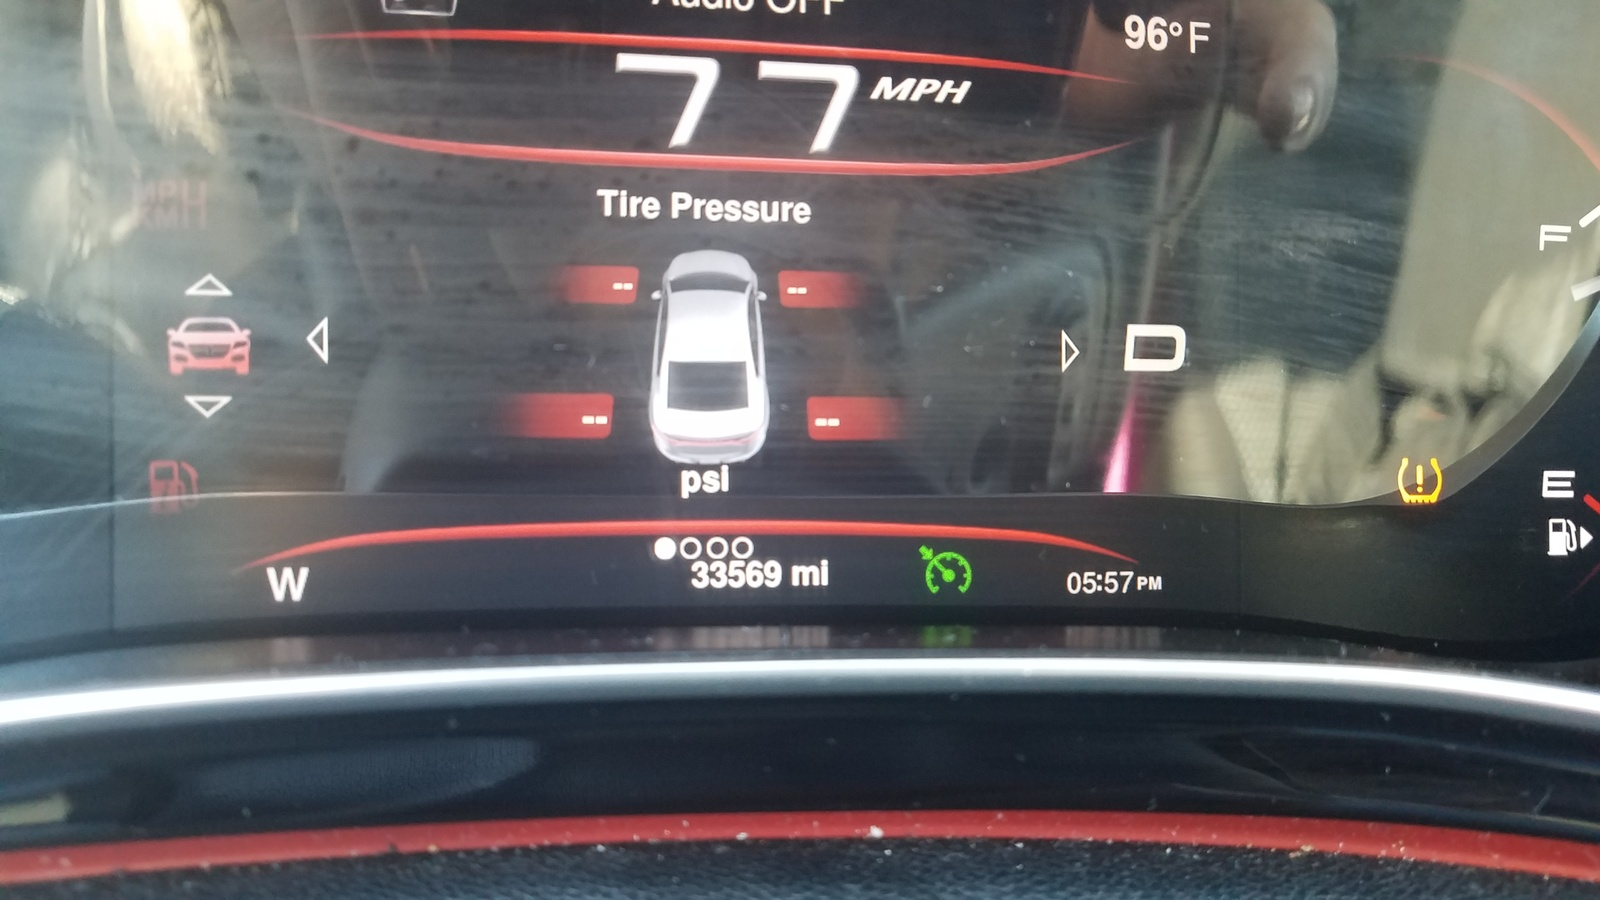 Dodge Dart Questions Light On For Tire Pressure And All 4 Say 0 Psi Cargurus